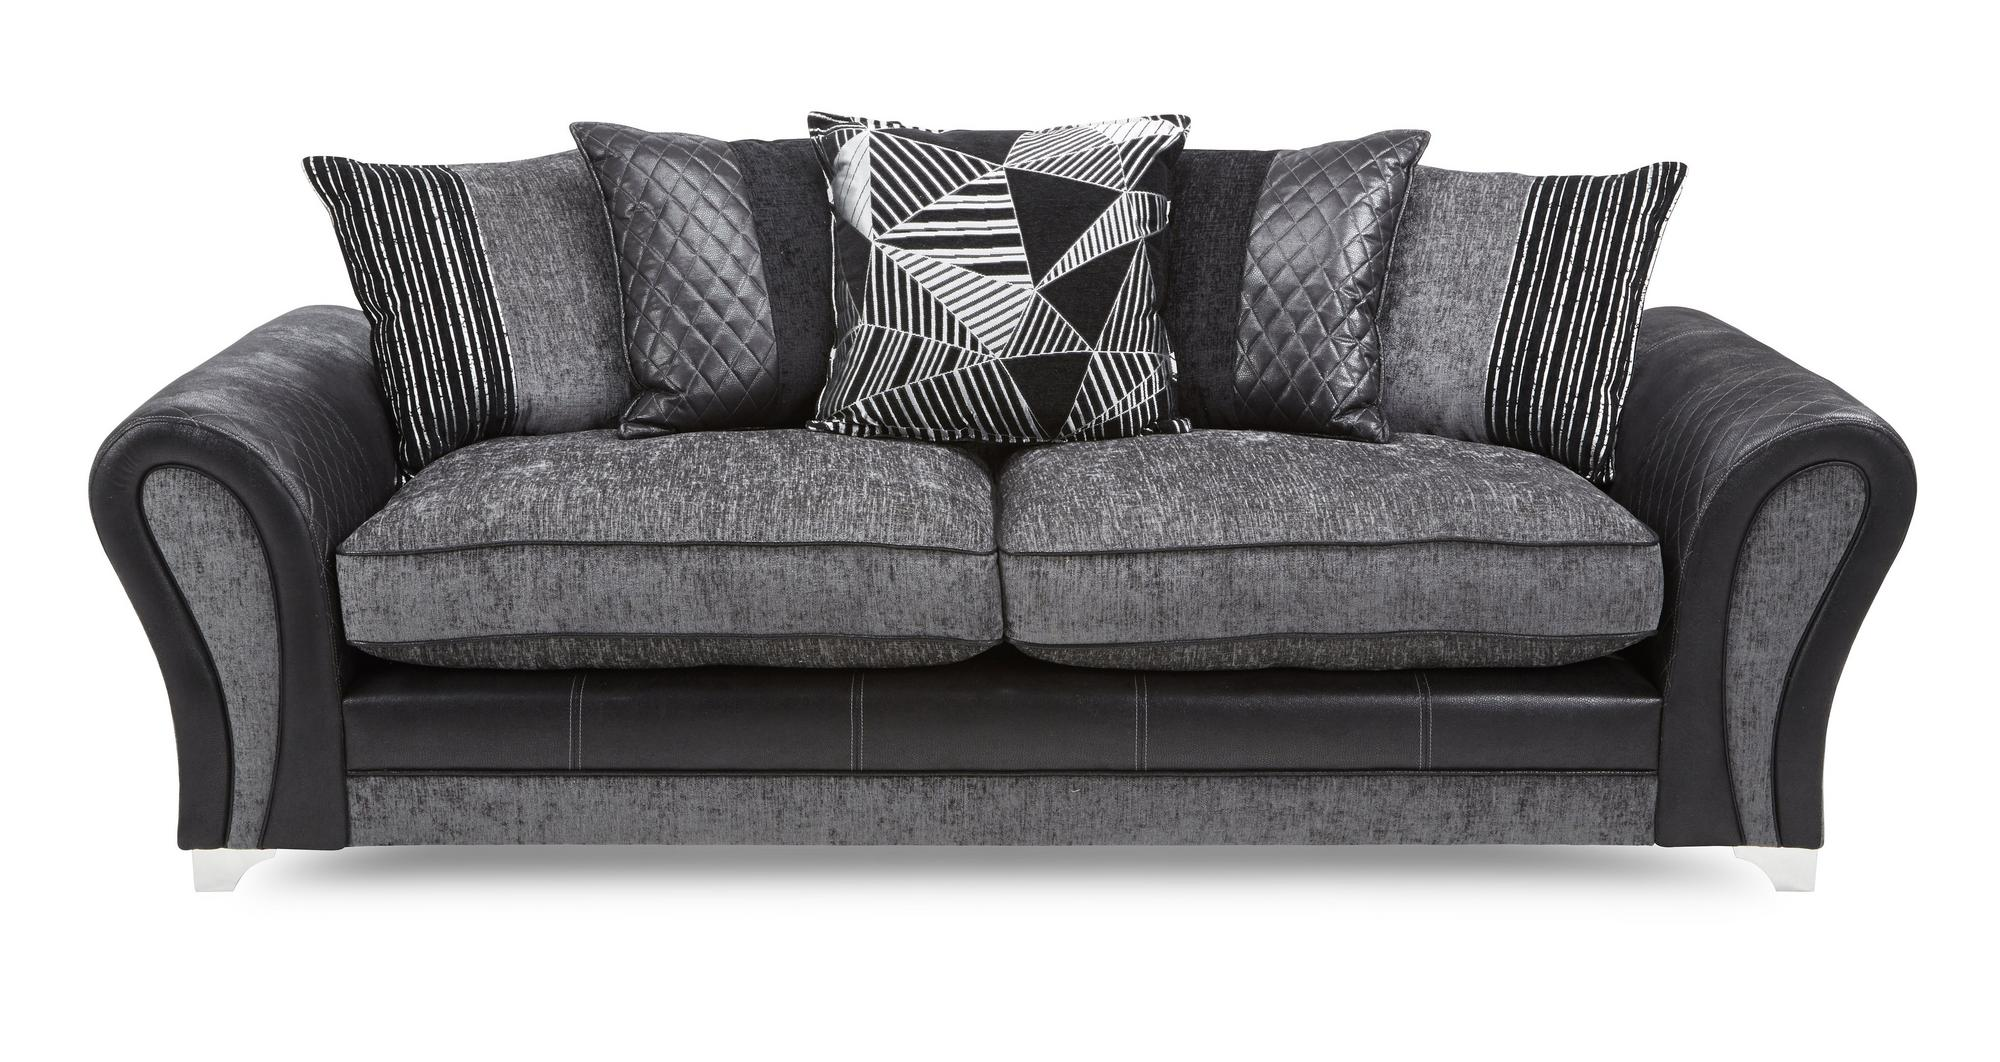 Dfs Starlet Fabric 4 Seater Pillow Back Sofa Formal 2